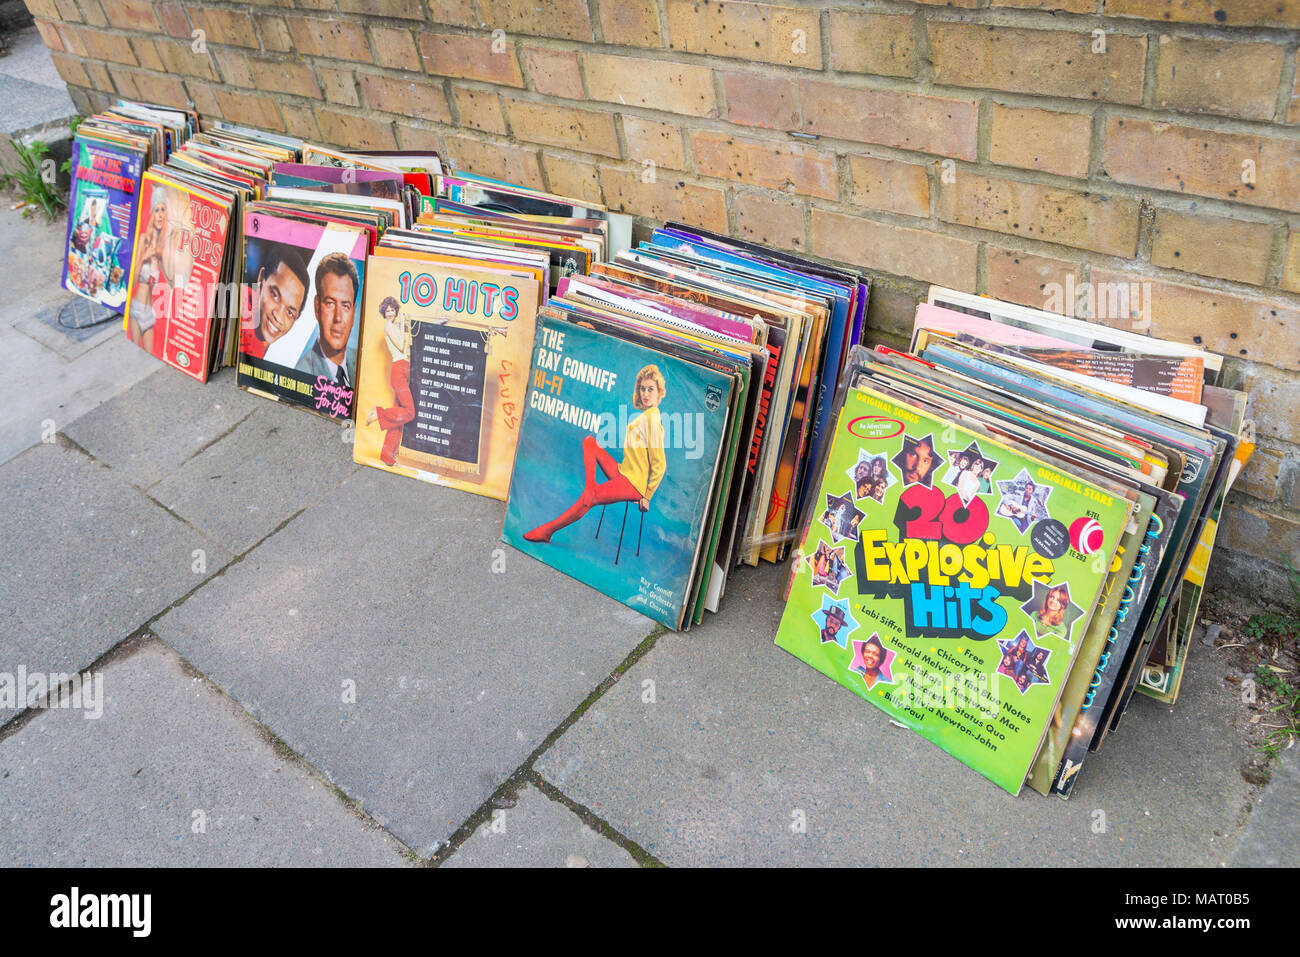 Old vinyl LPs left out in the street for people to help themselves, UK, London - Stock Image